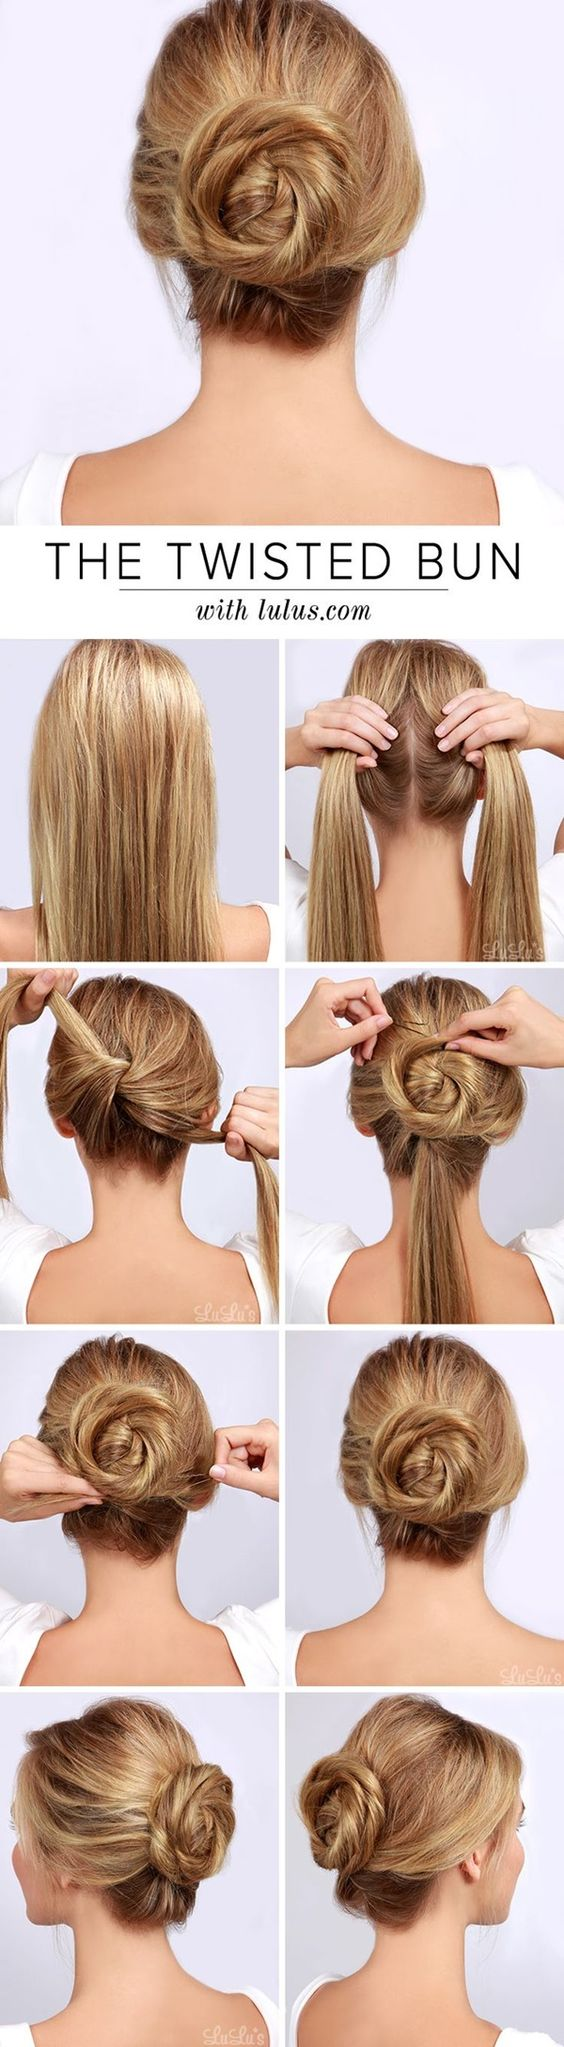 12 easy hairstyles for any and all lazy girls - pretty designs